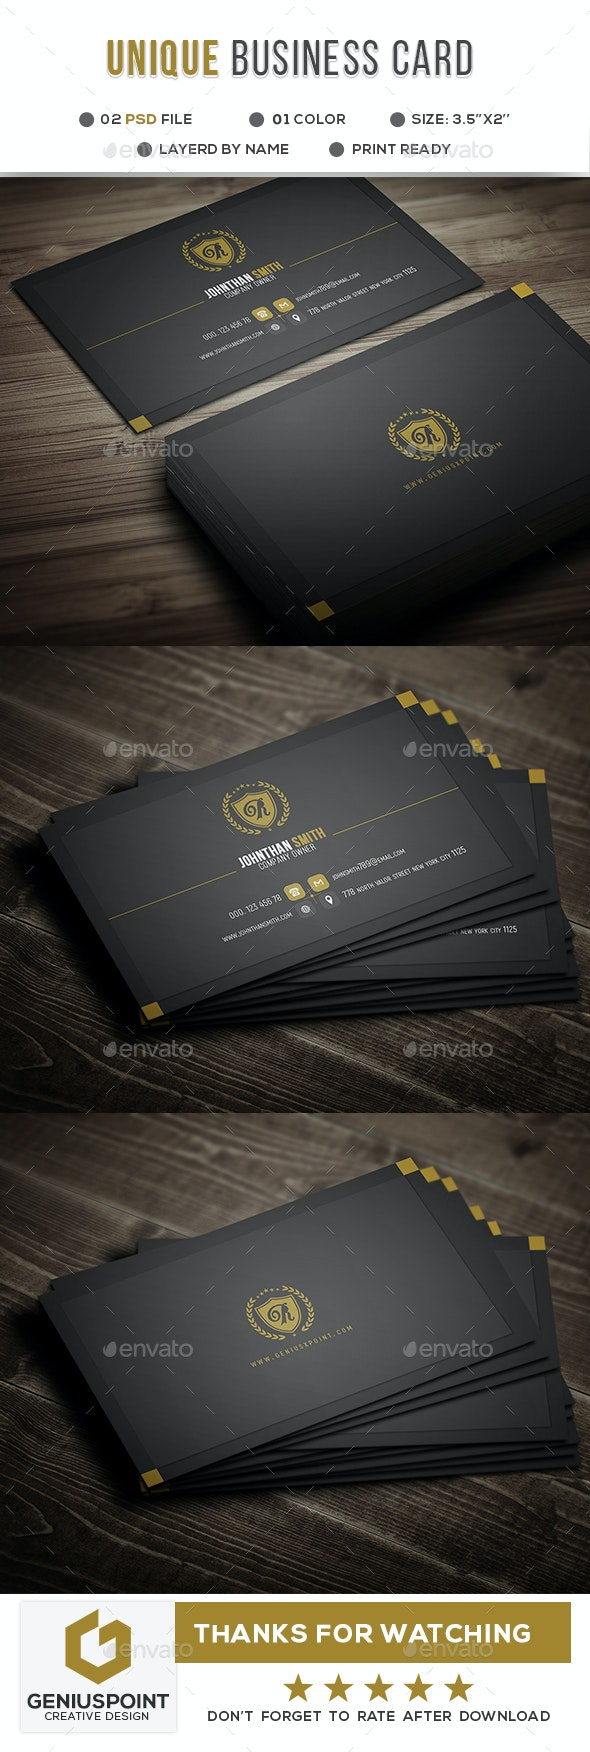 Shooter Business Card - Business Cards Print Templates